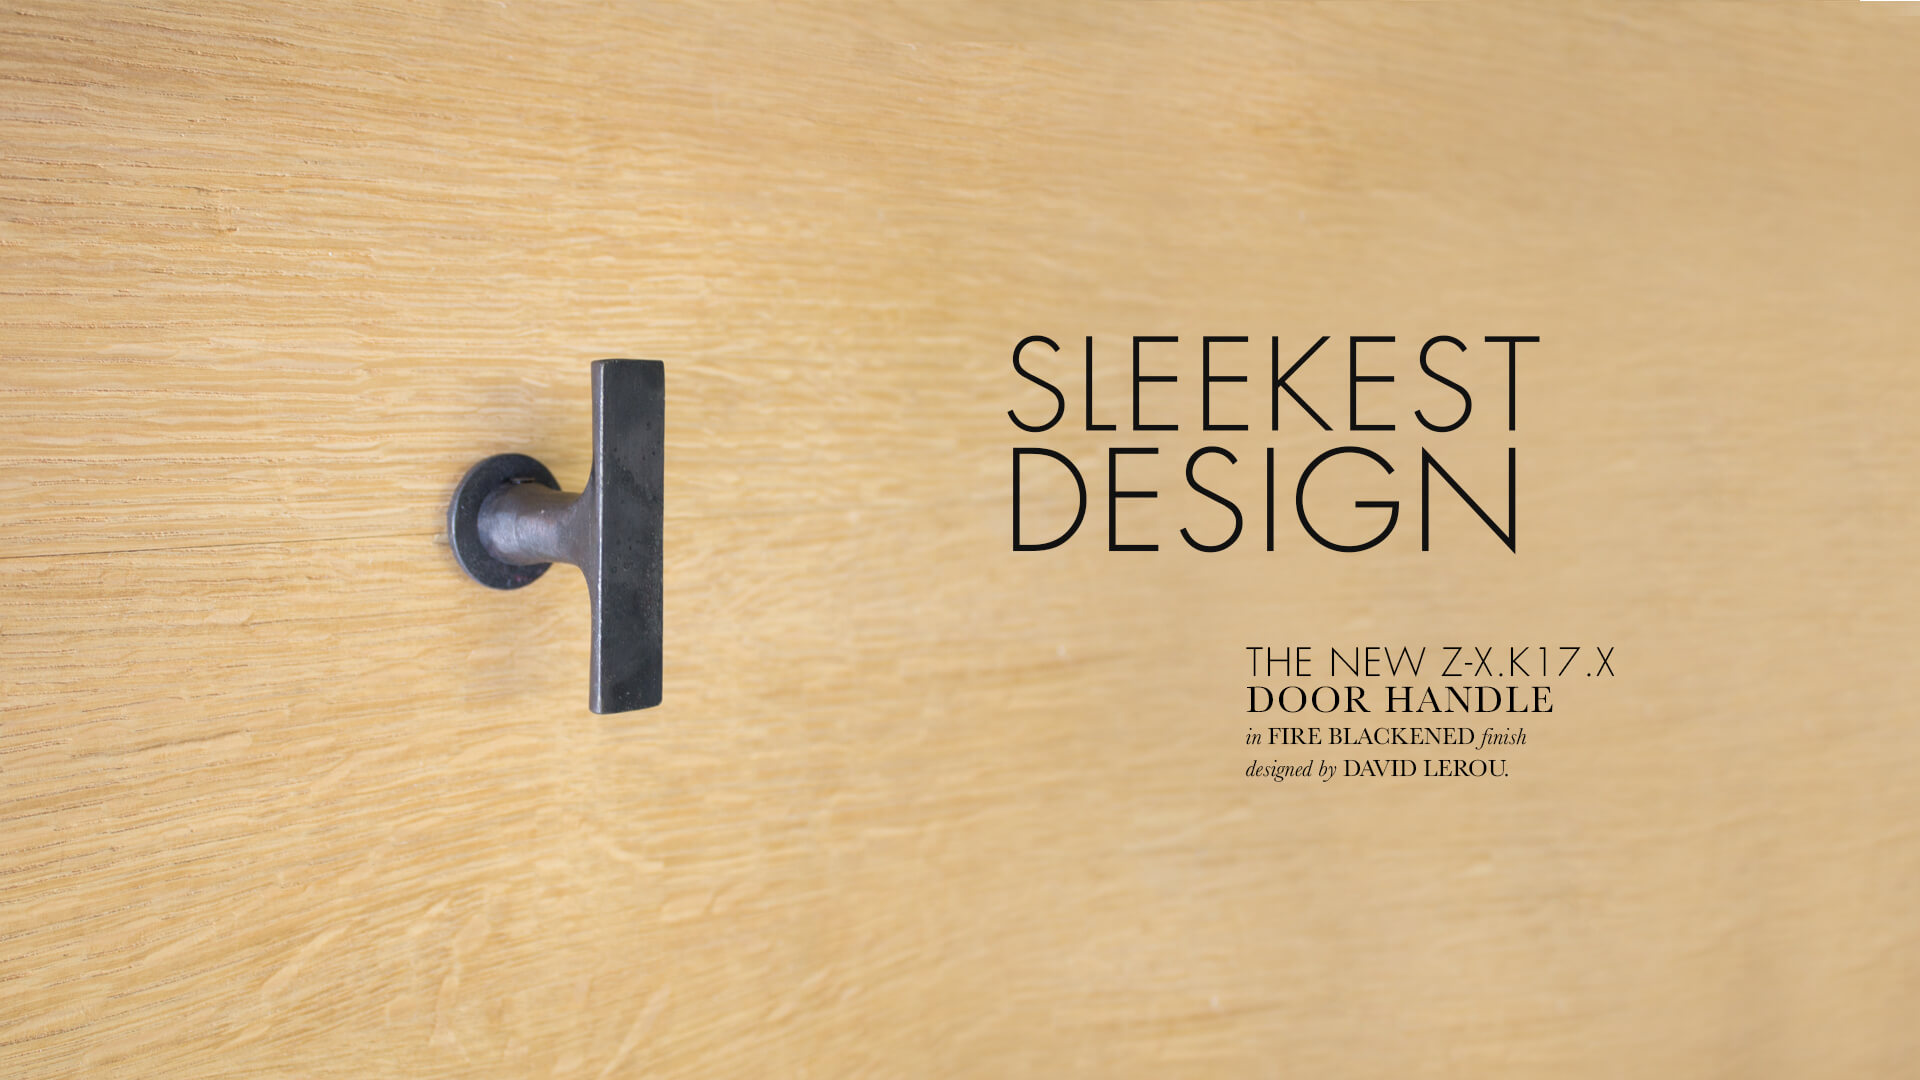 Lerou Z-Collection Handforged Door, Window and Furniture Hardware in Fire Blackened Finish. Z-Collectie: handgesmeed deur-, raam en meubelbeslag in Vuurgezwart.